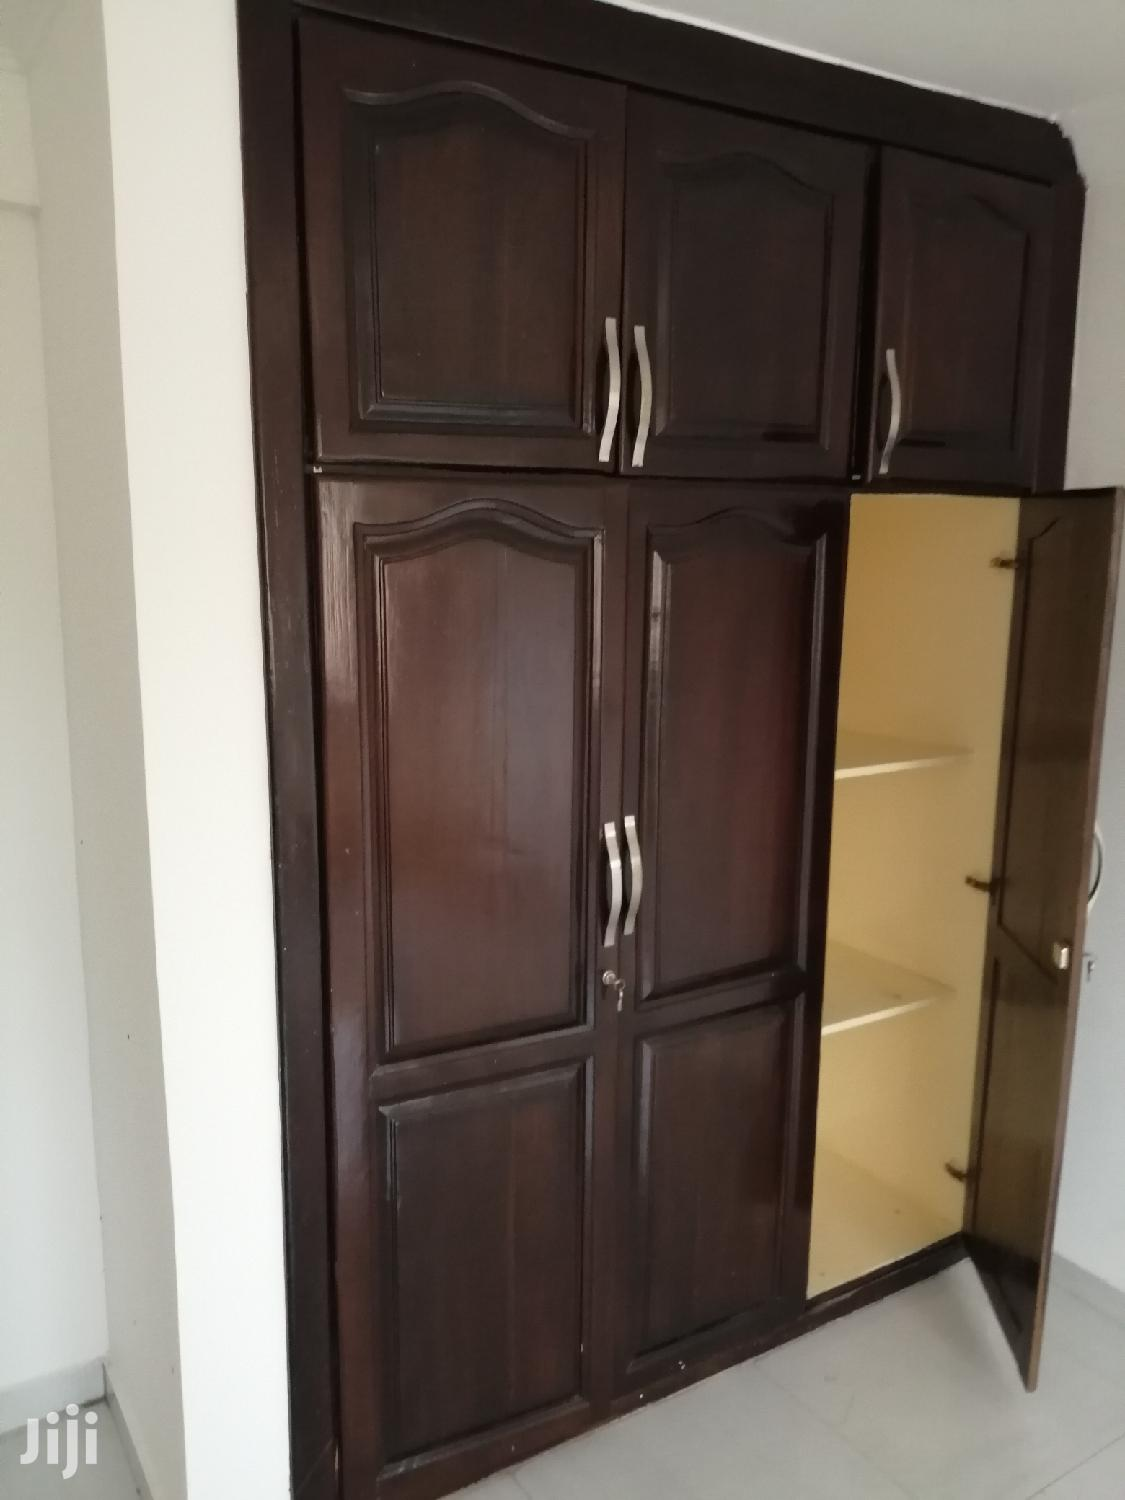 Newly Built 3 Bedroom Ensuit Apartment For Rent